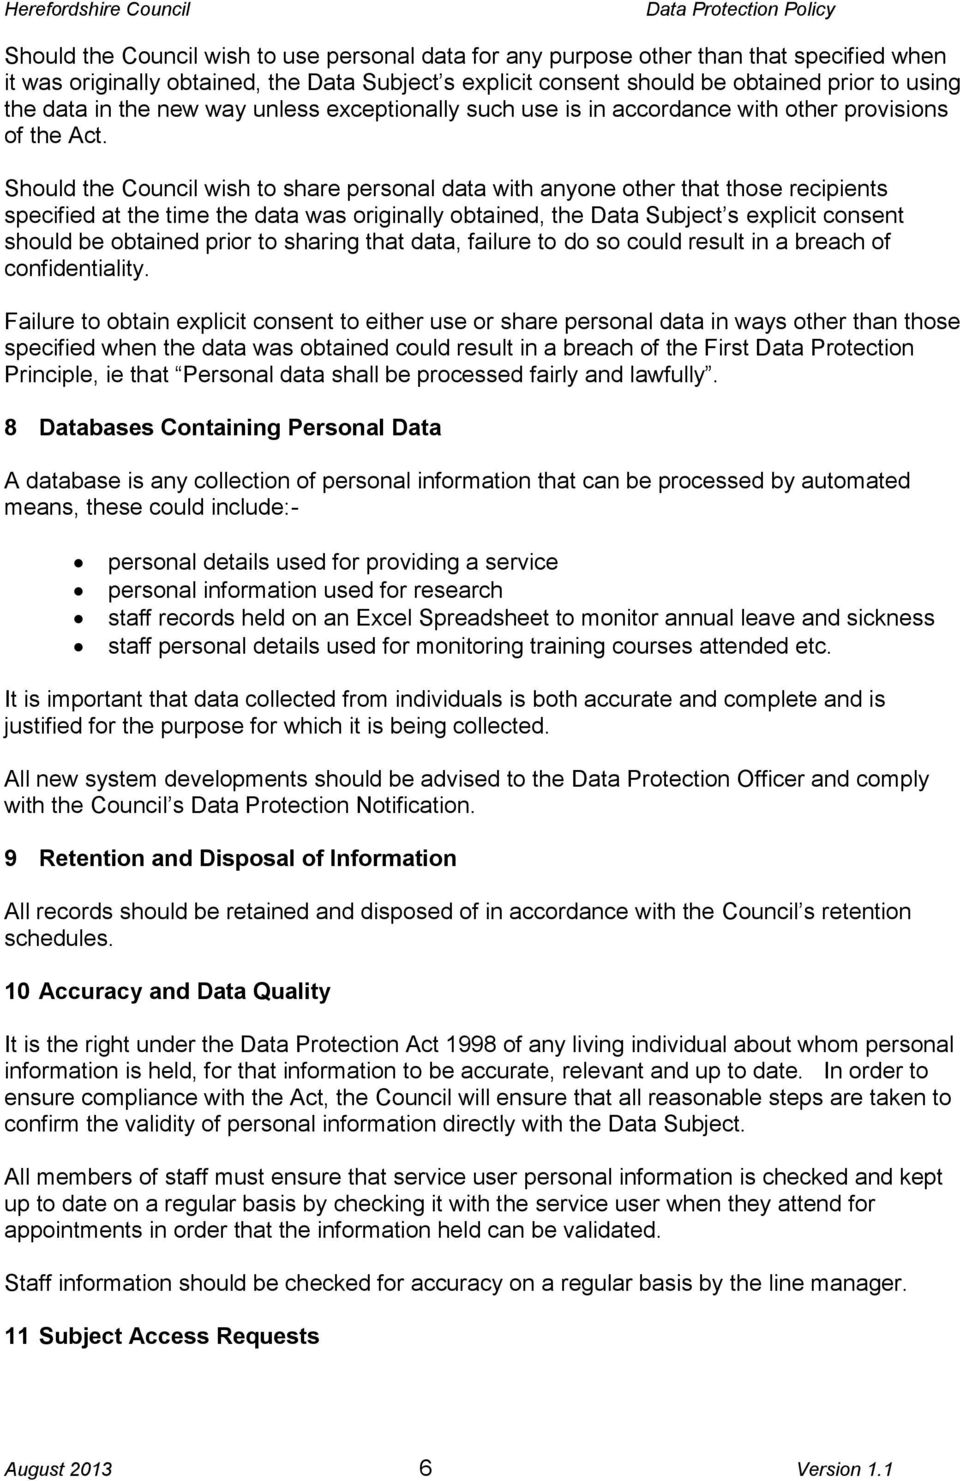 Should the Council wish to share personal data with anyone other that those recipients specified at the time the data was originally obtained, the Data Subject s explicit consent should be obtained